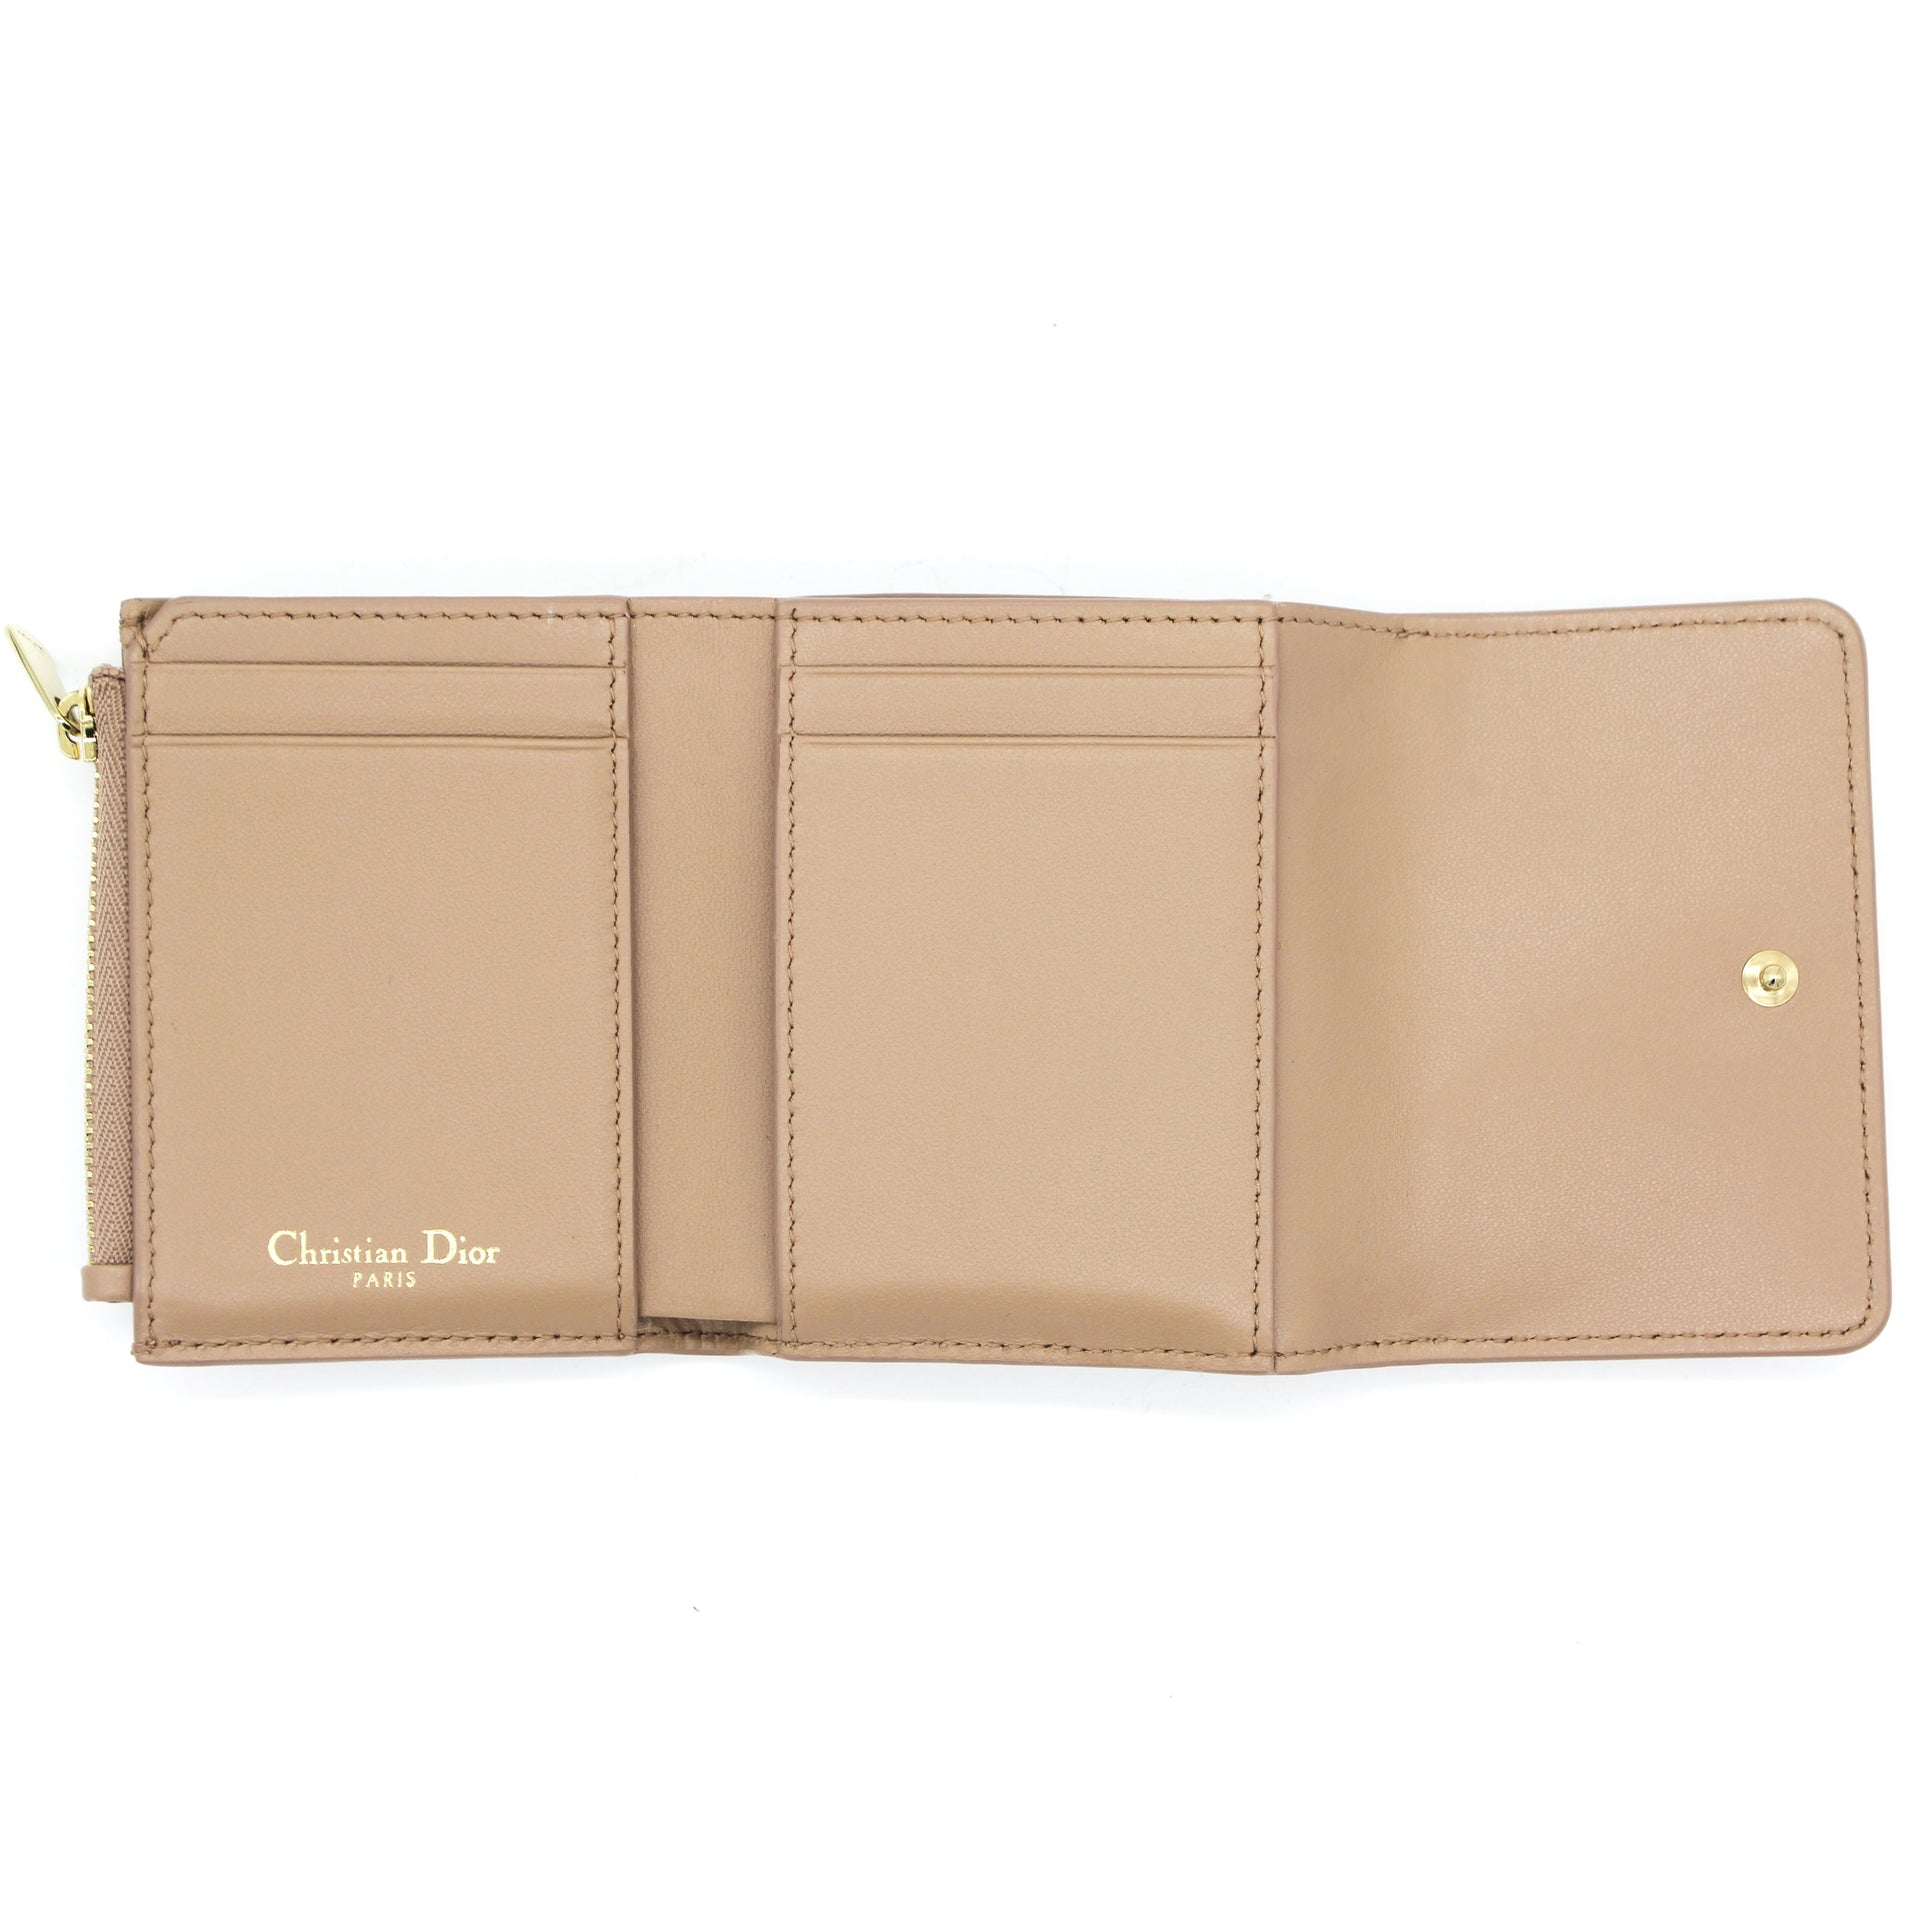 30 Montaigne Compact Wallet